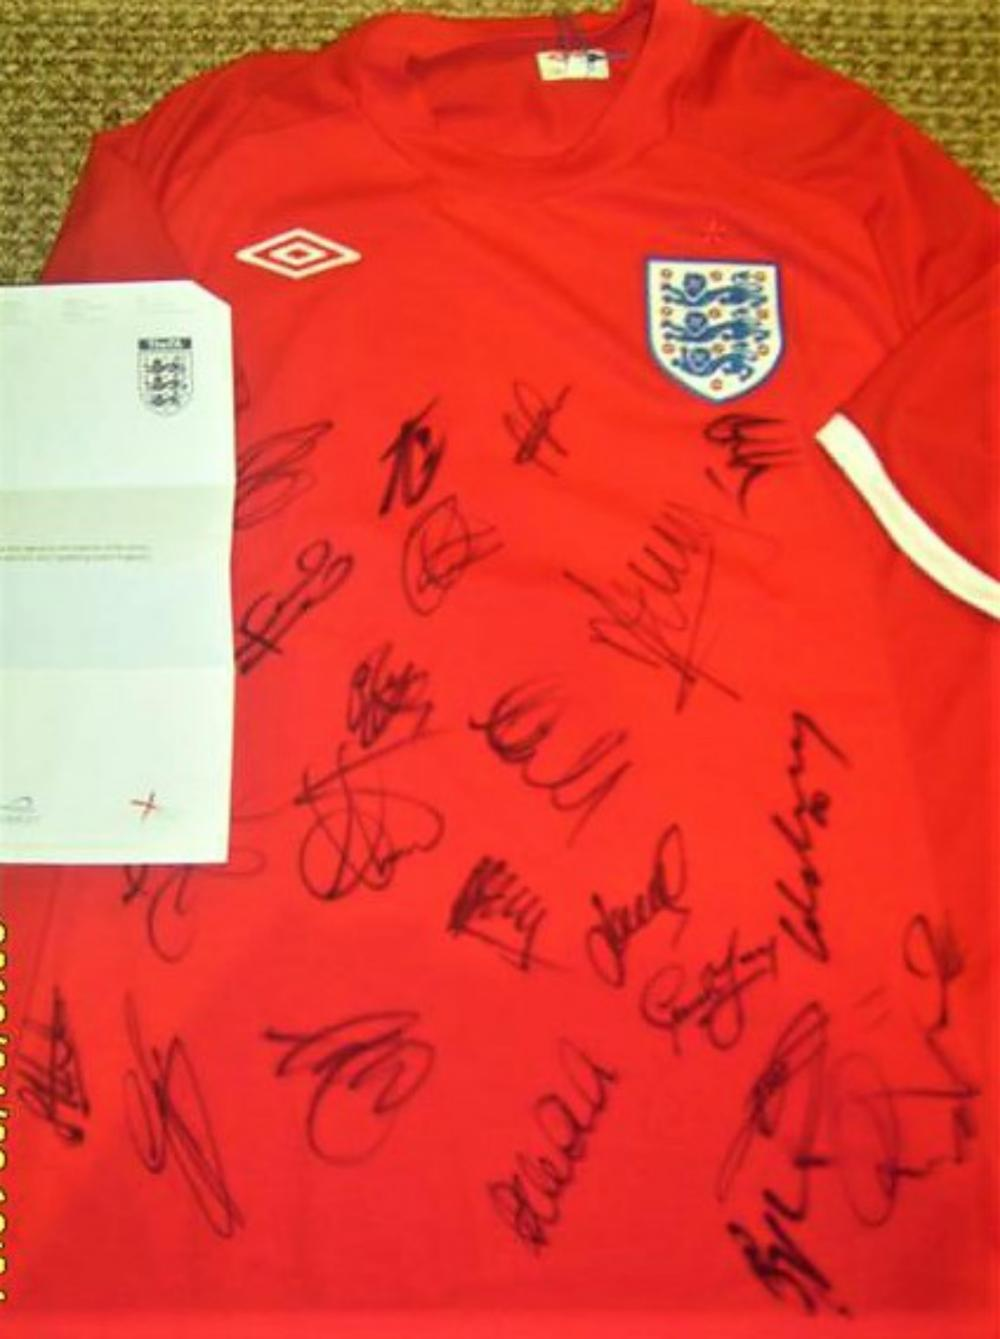 Lot 259: Team Signed England Shirt (No 4) - 2012 Shirt signed by the senior players who playered in the Qualifying game against England v Switzerland - Signed by Lampard, Rooney, Barry, Milner, Lennon and many more